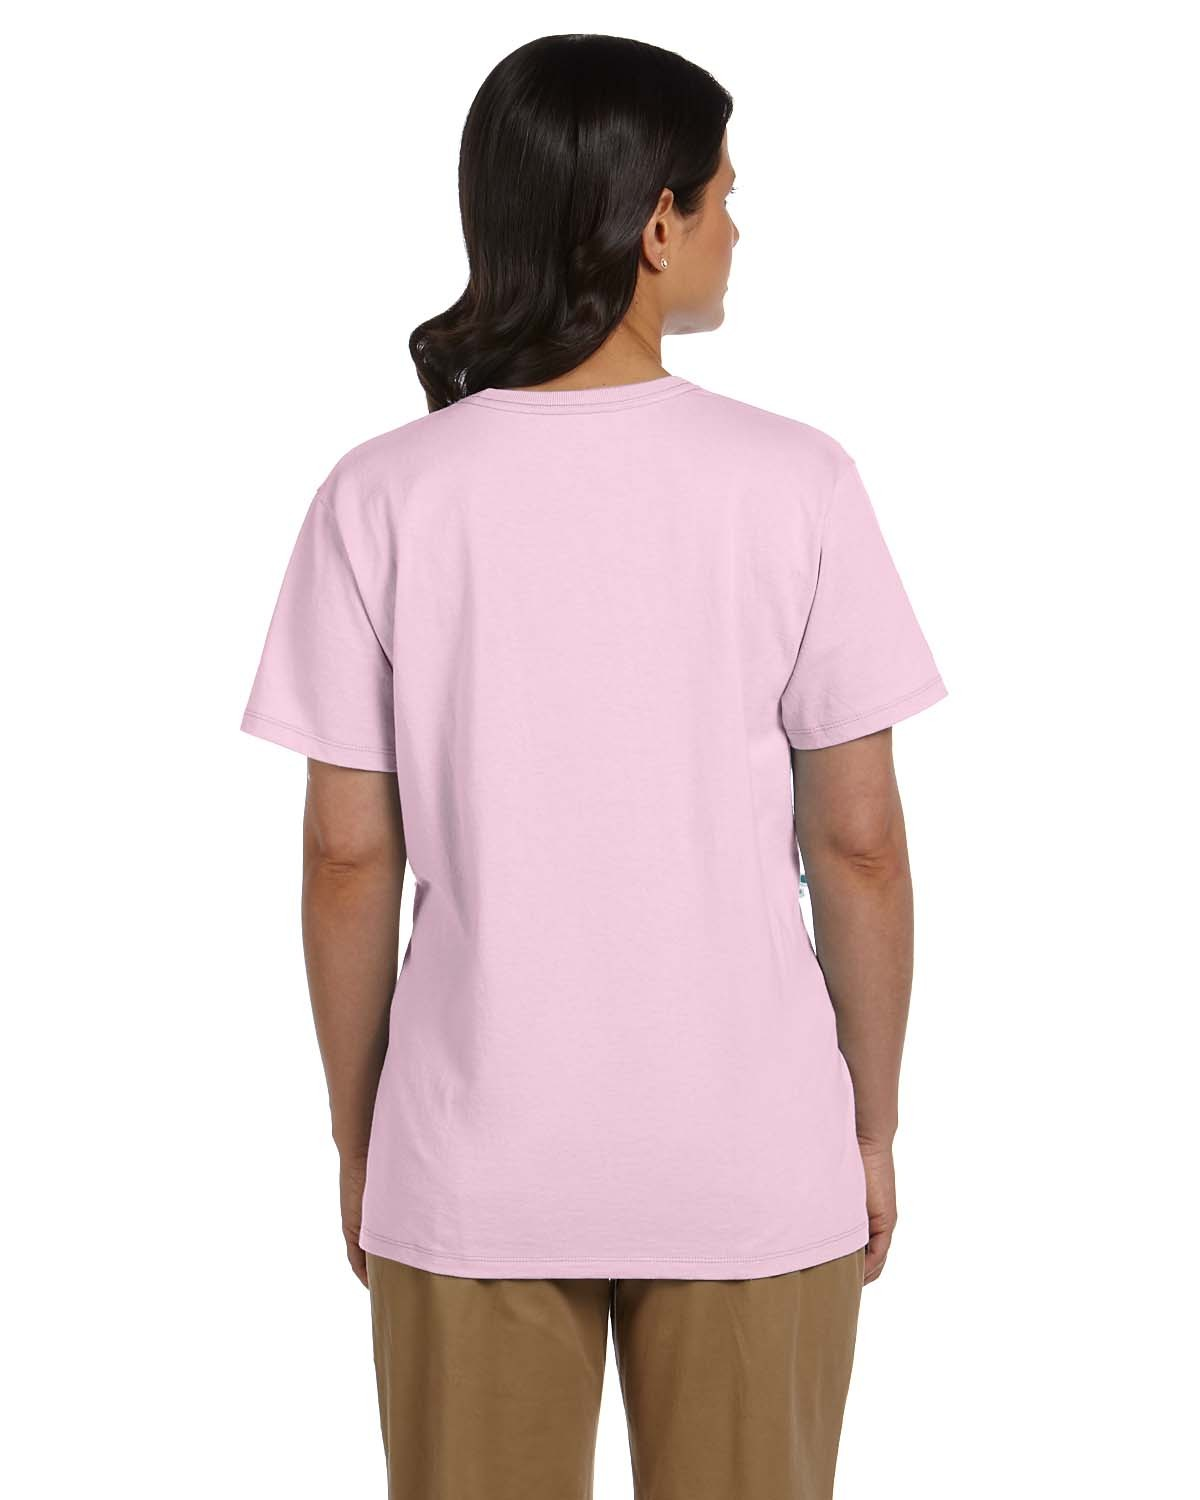 5780 Hanes PALE PINK